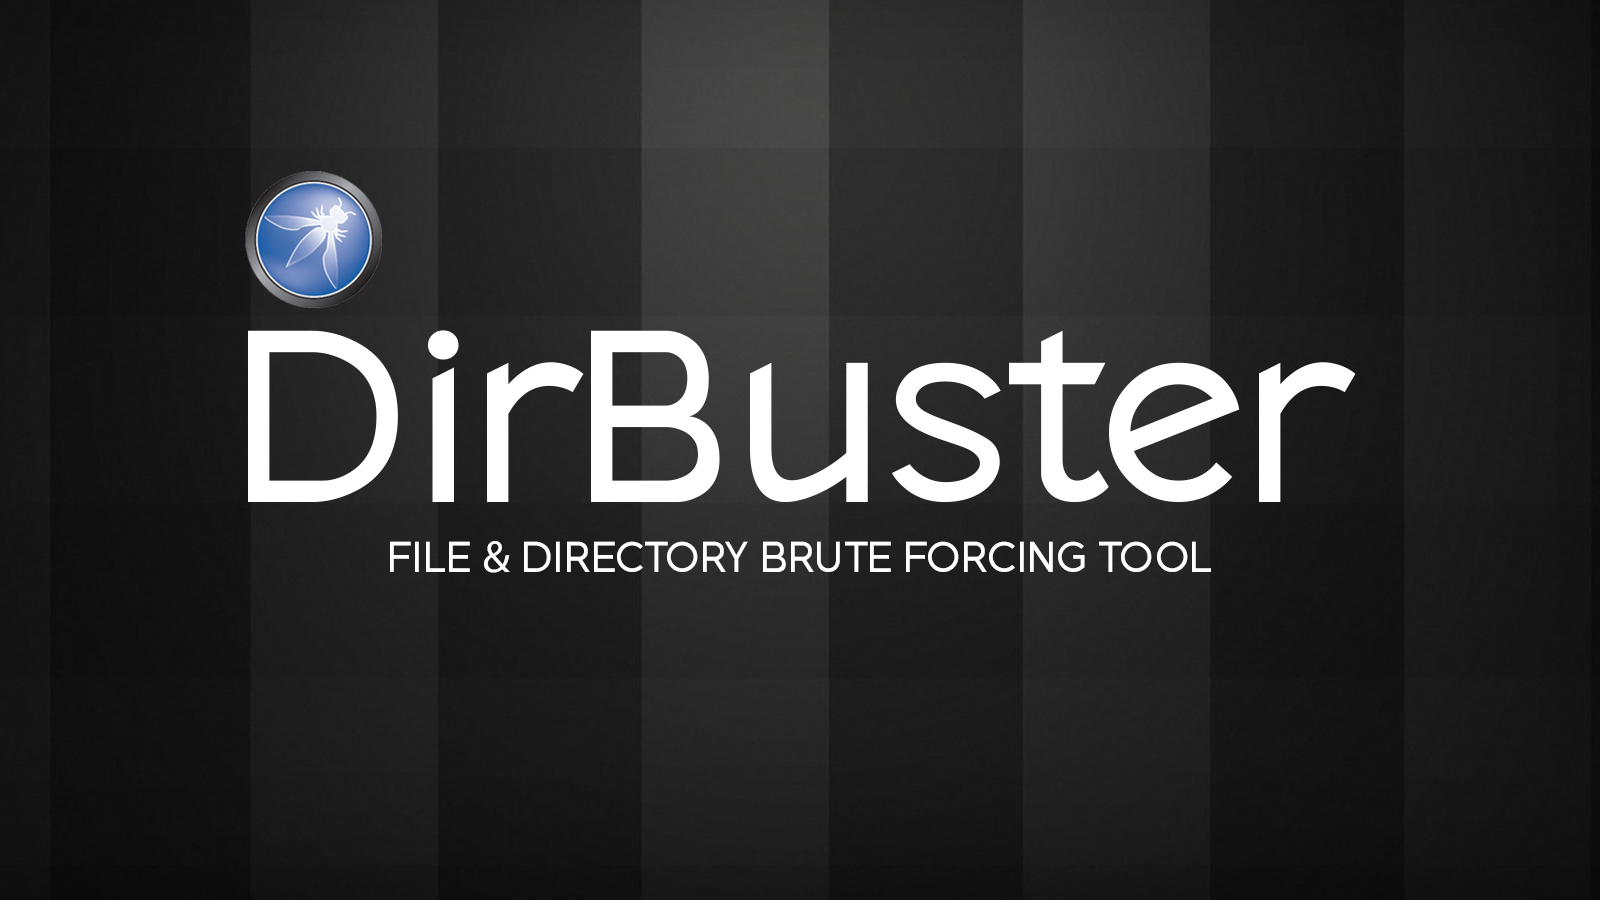 DirBuster -  File & Directory Brute Forcing Tool